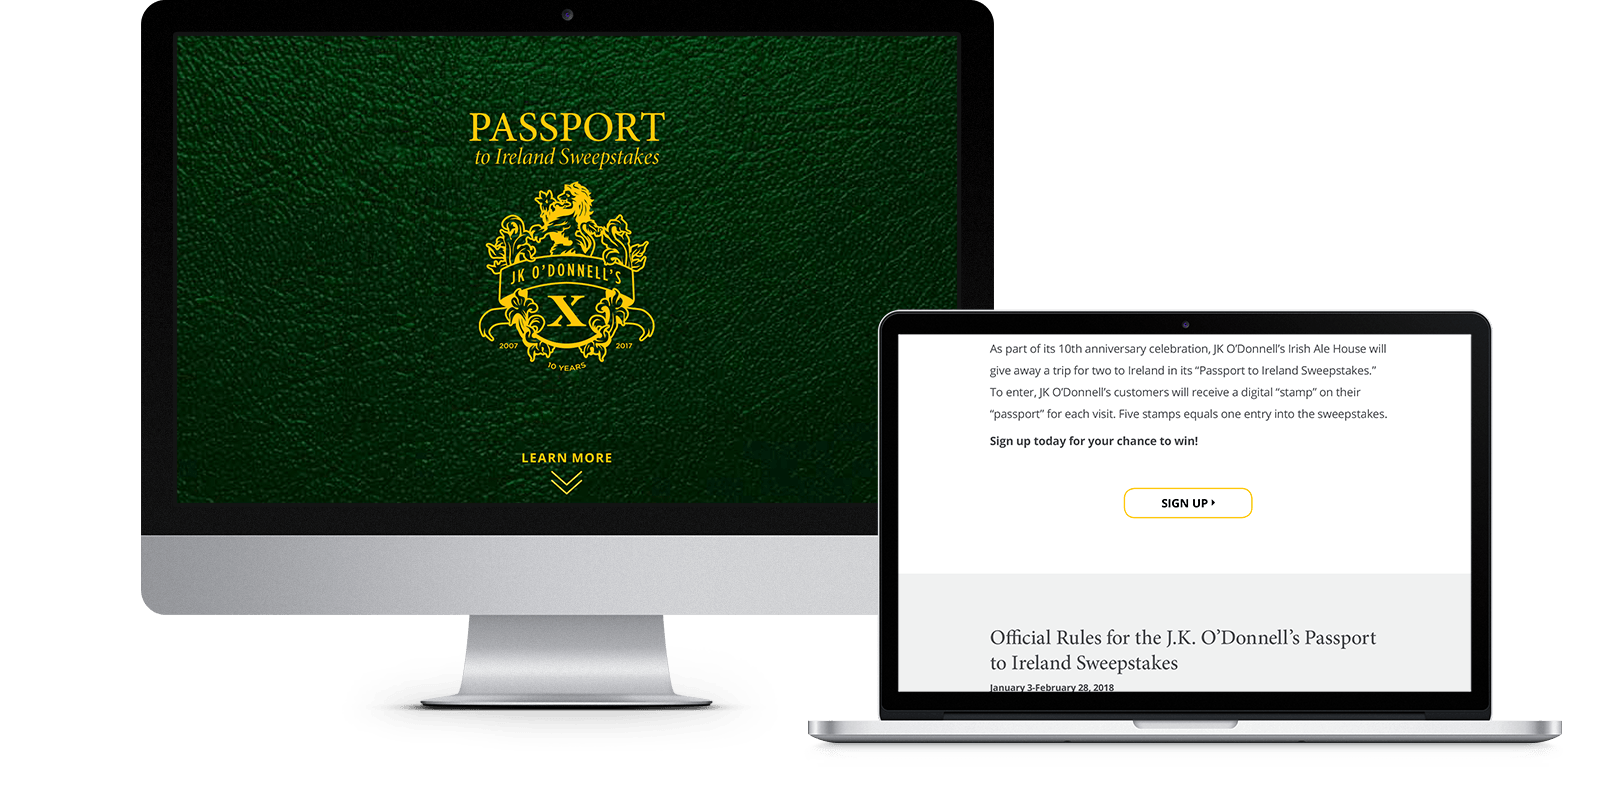 JK O'Donnell's, Passport to Ireland Sweepstakes Landing Page